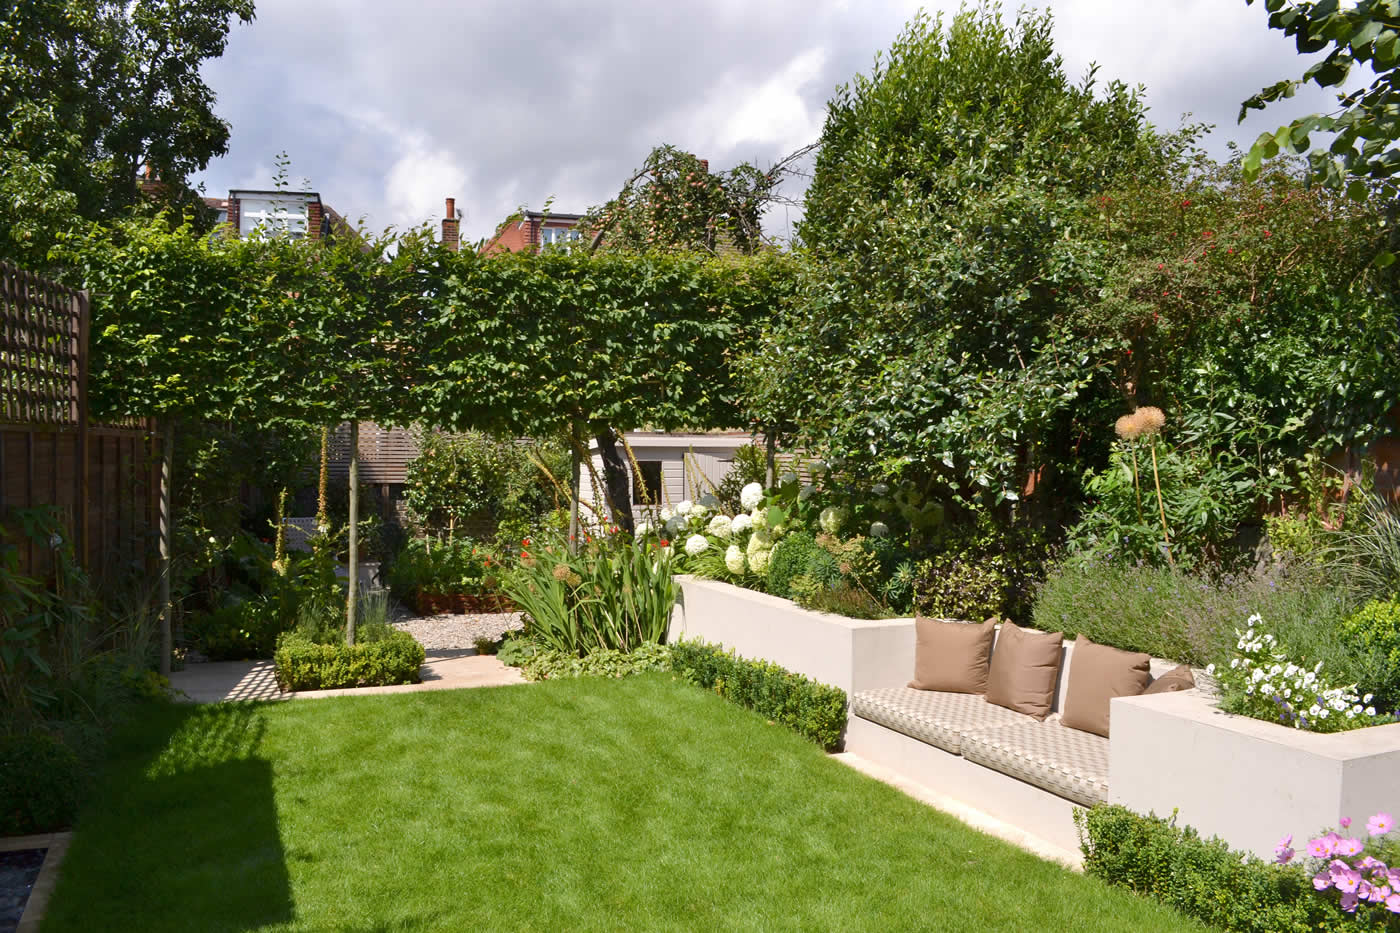 Lovely low maintenance family garden with raised bed for herbs and pl